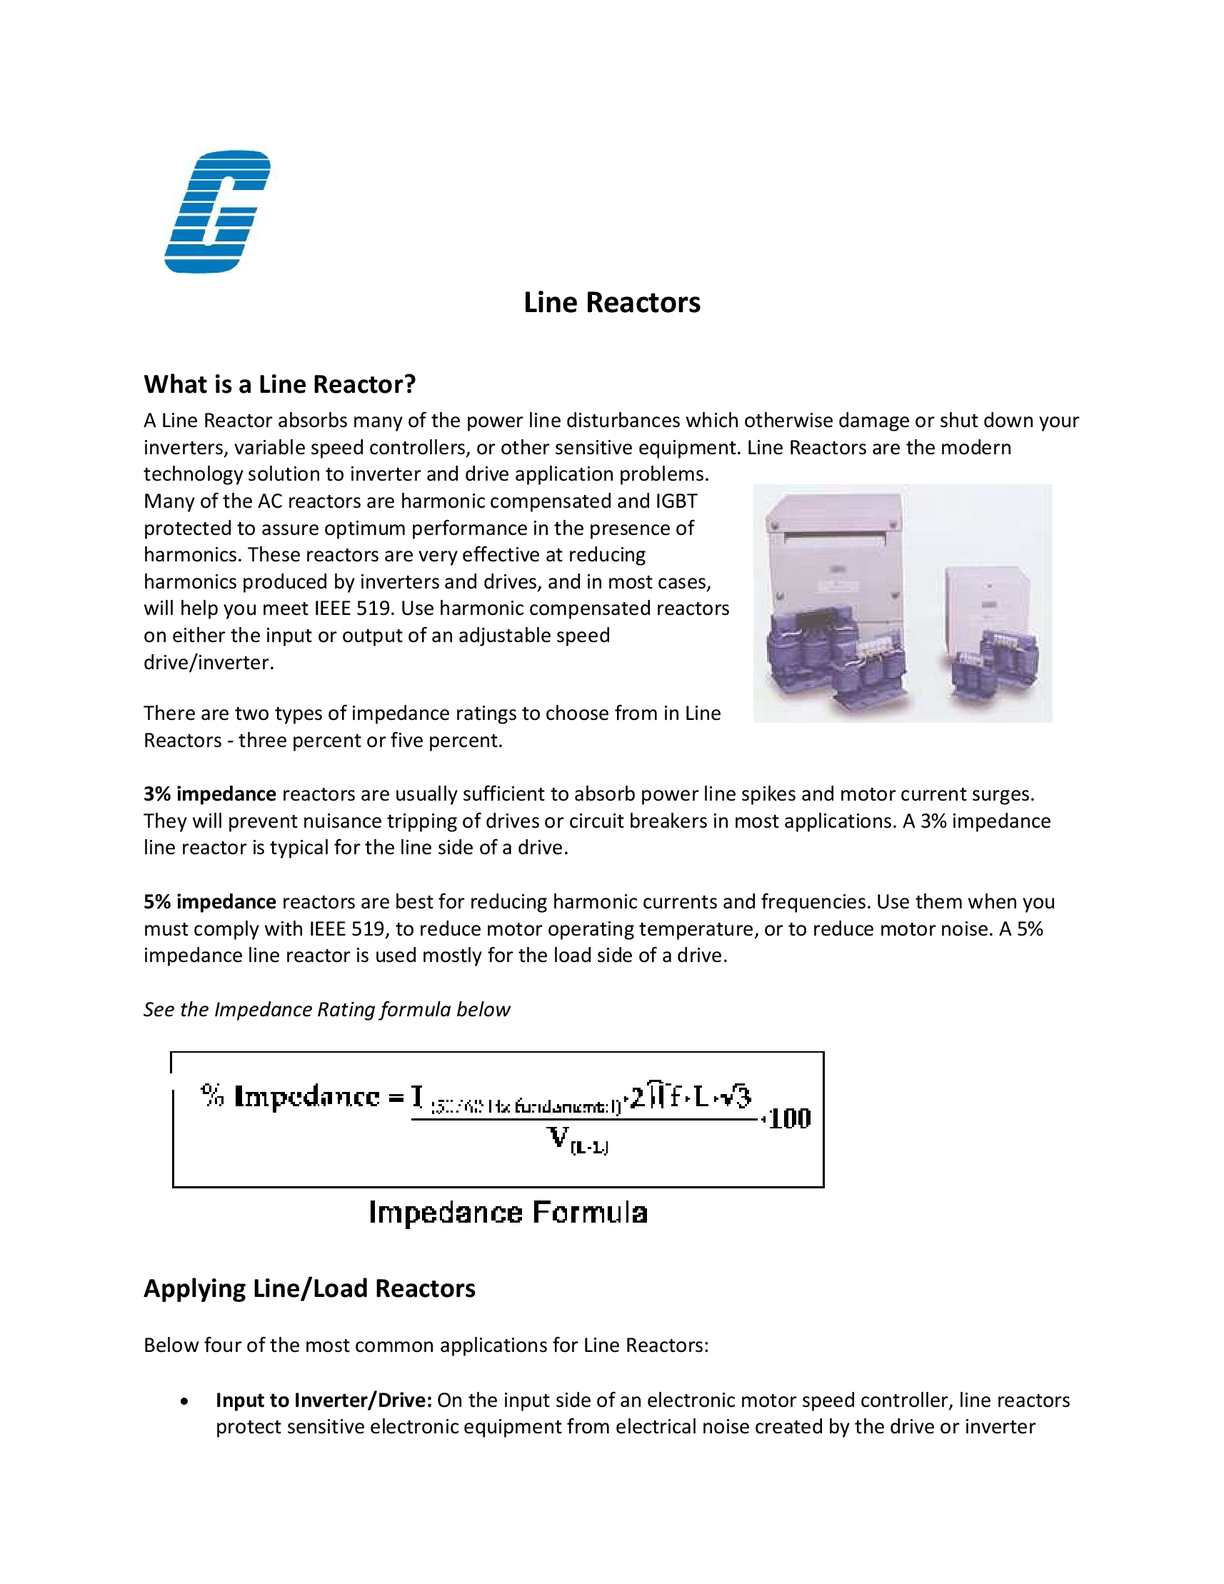 Calaméo - Line Reactors - How To Apply A Load and Line Reactor